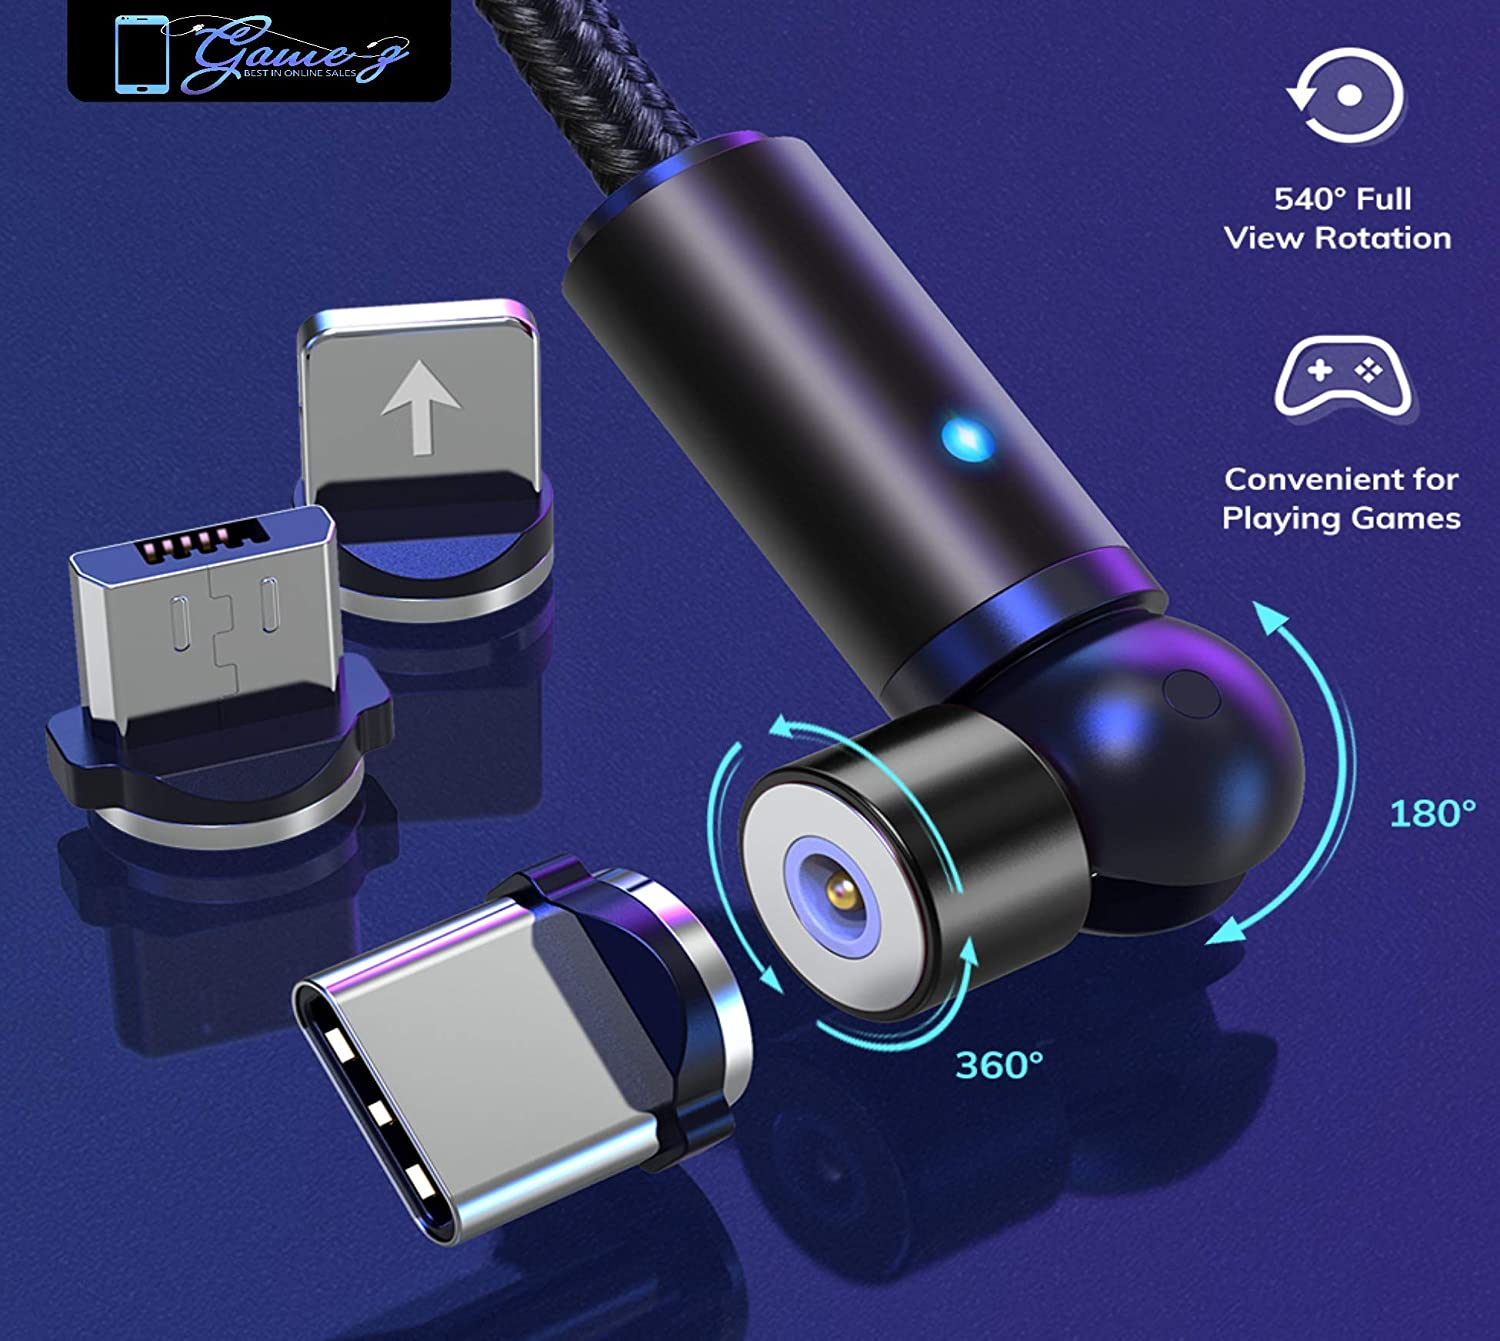 Black Game-Z Magnetic Charging Cable 540 Degree Magnetic Phone Charger,3-in-1 USB Magnetic Cable Compatible with Micro USB,Type C and iProducts